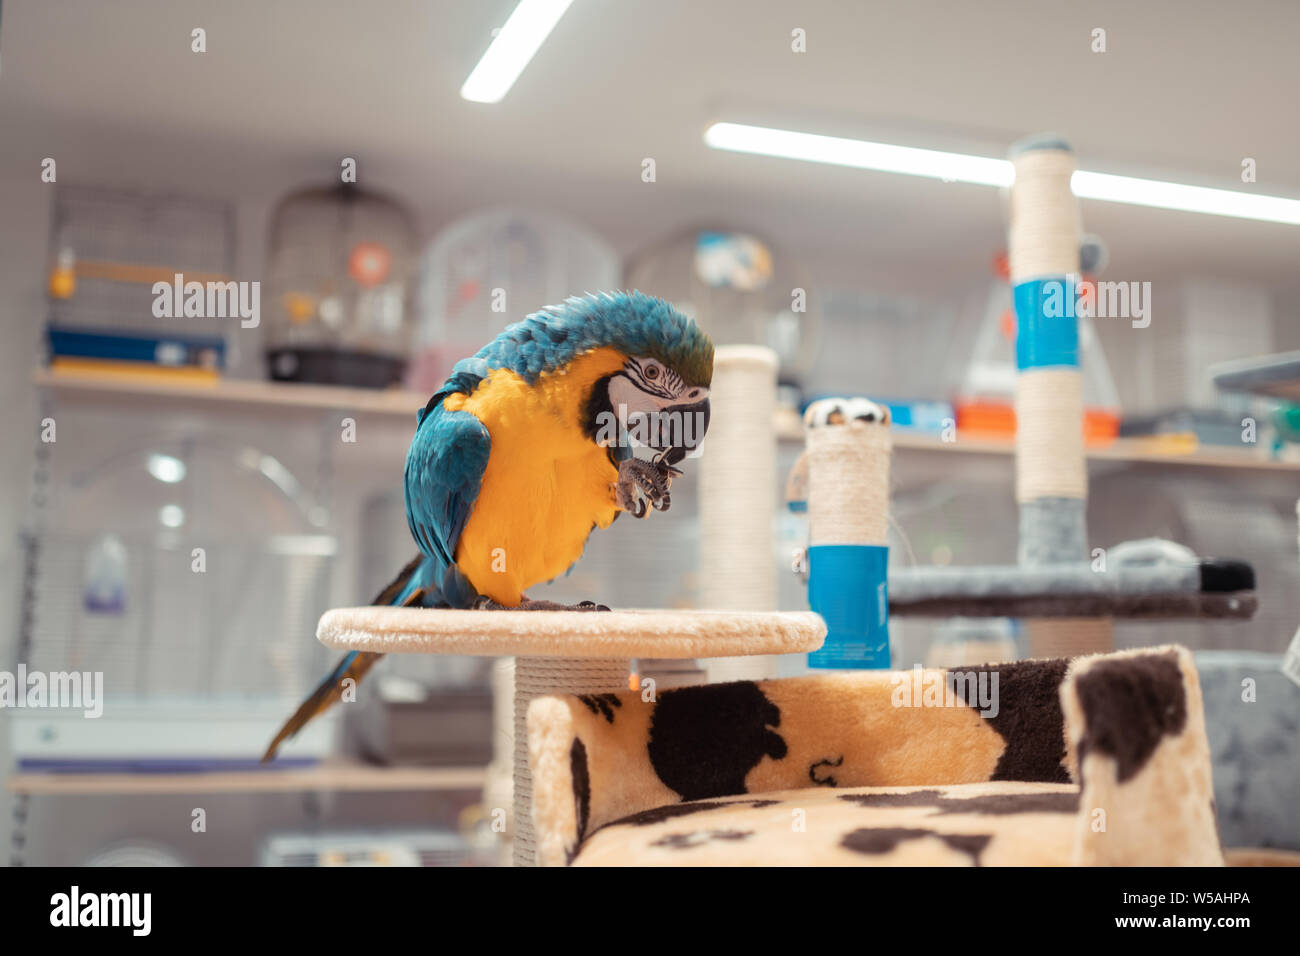 Bird Pet Shop High Resolution Stock Photography And Images Alamy